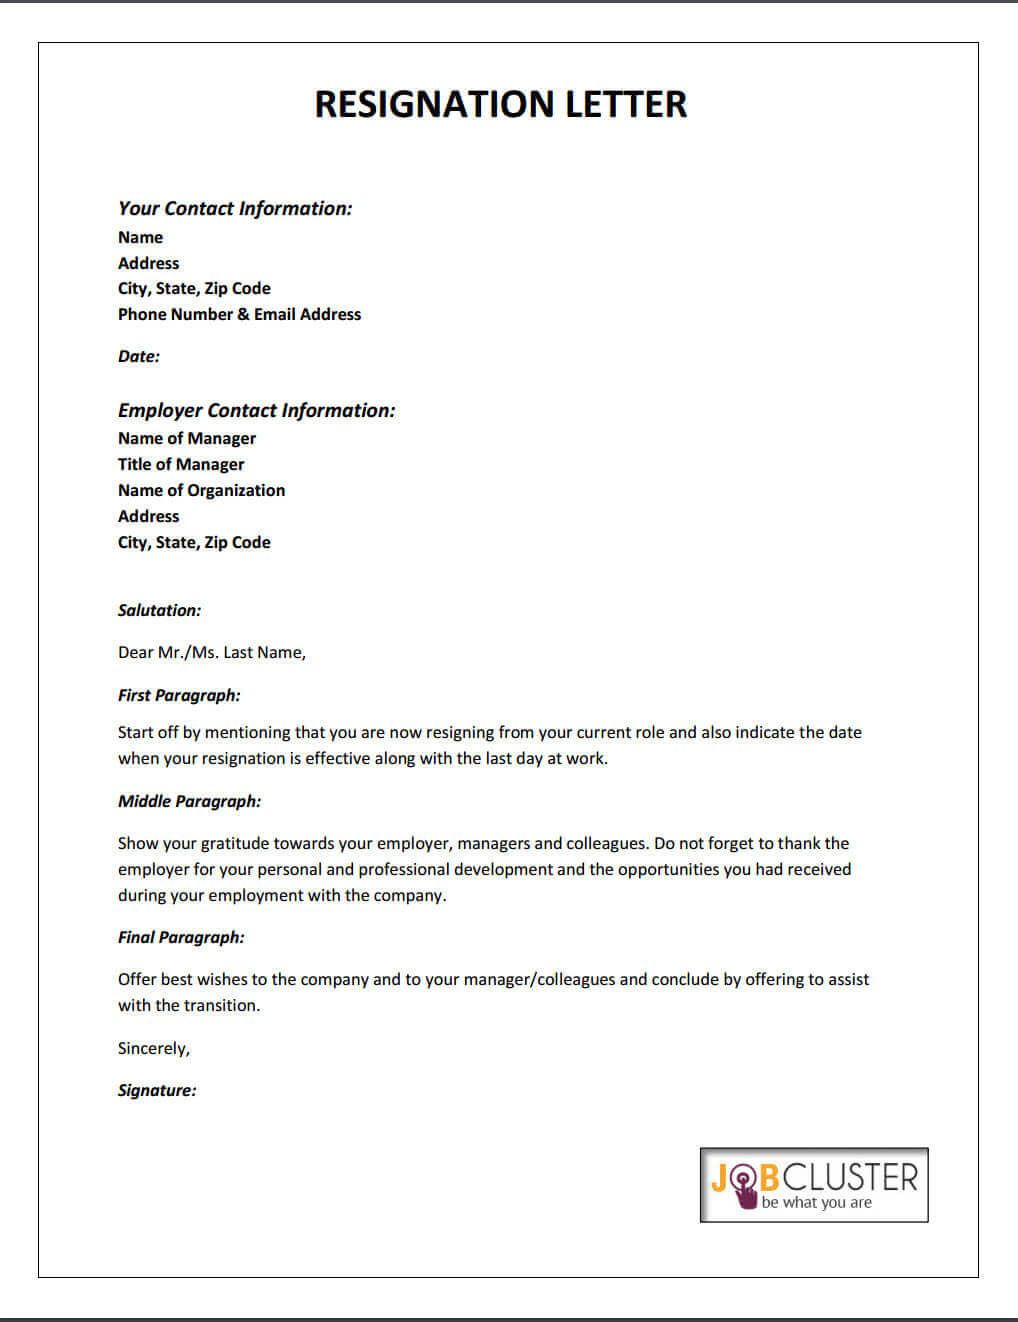 Resignation Letter TemplateJpg  Career Advice Resume Tips